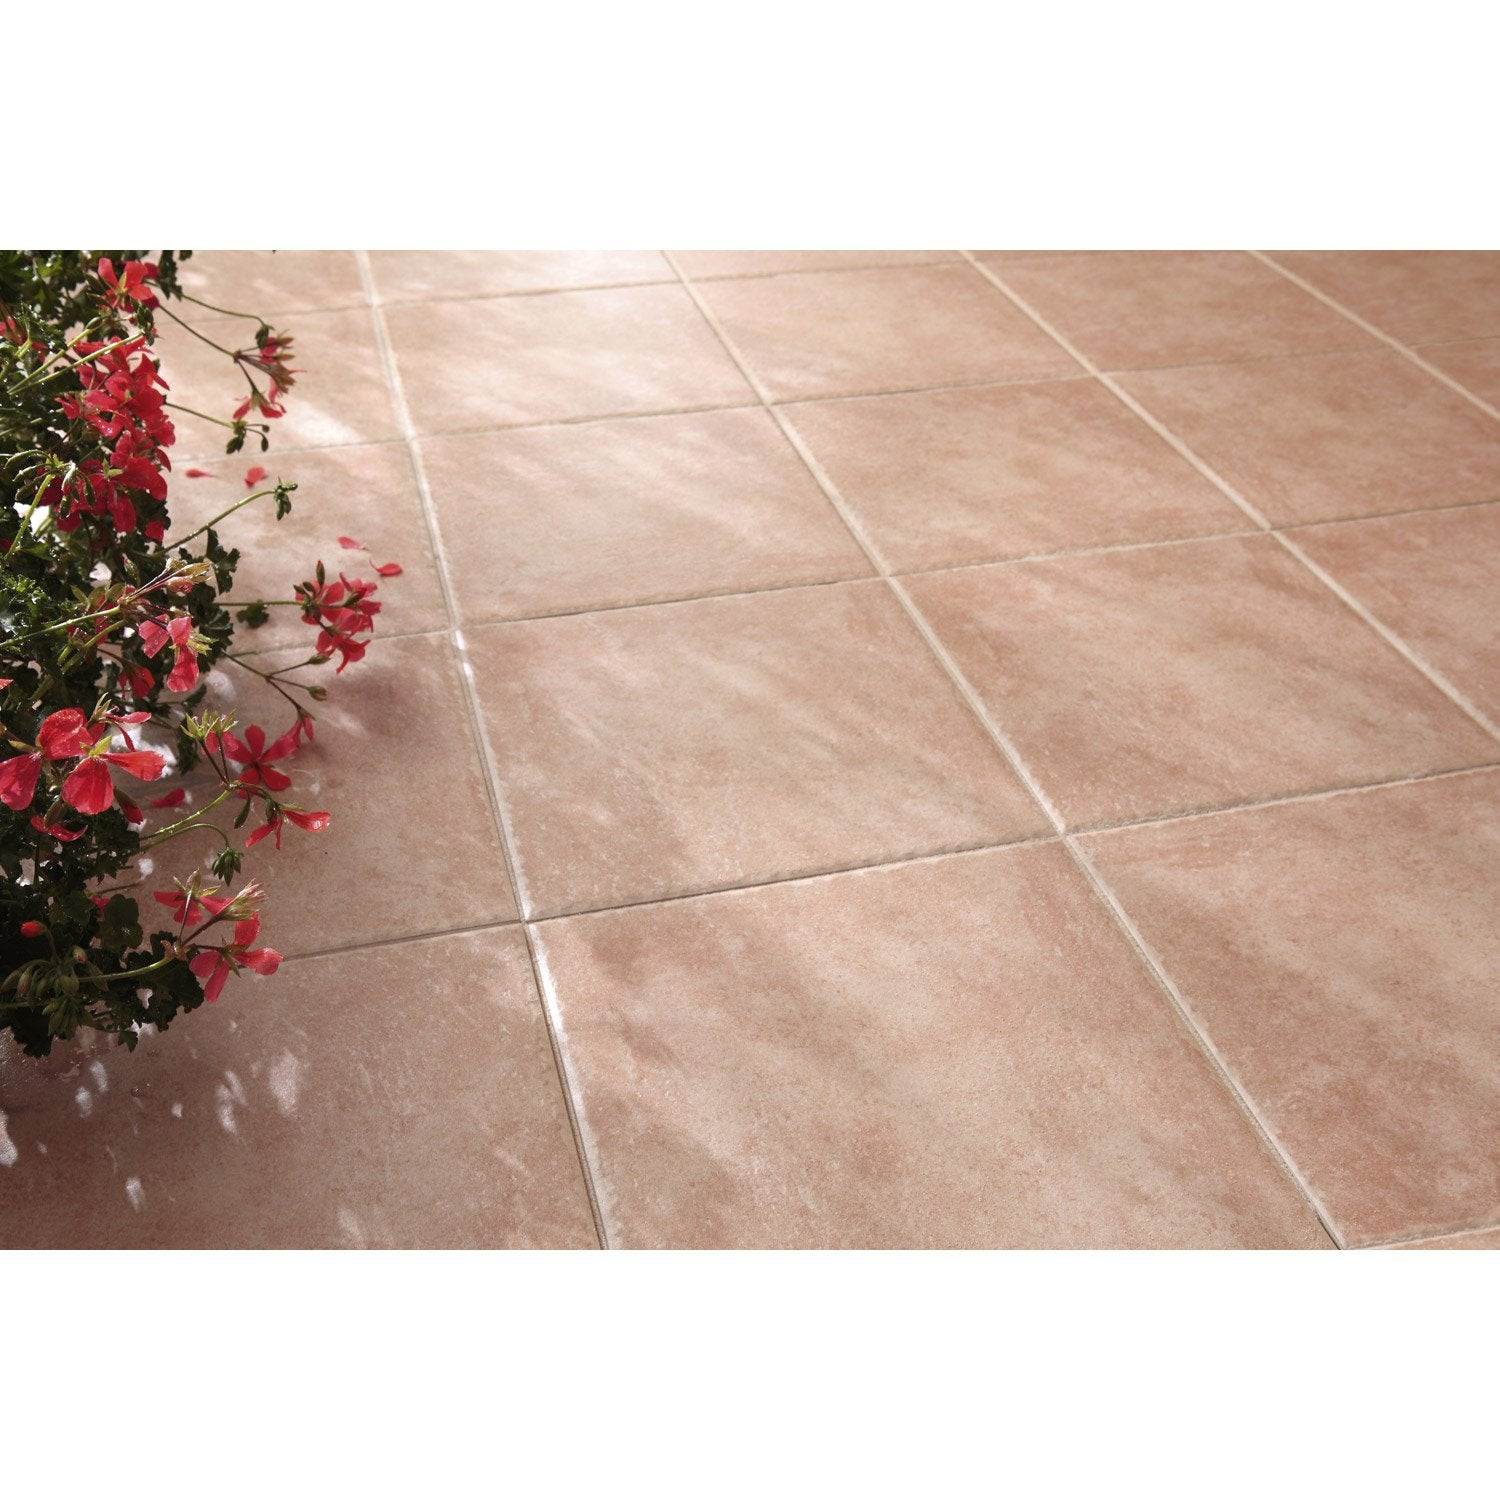 Carrelage sol rose effet pierre michigan x cm for Carrelage pierre de bourgogne leroy merlin